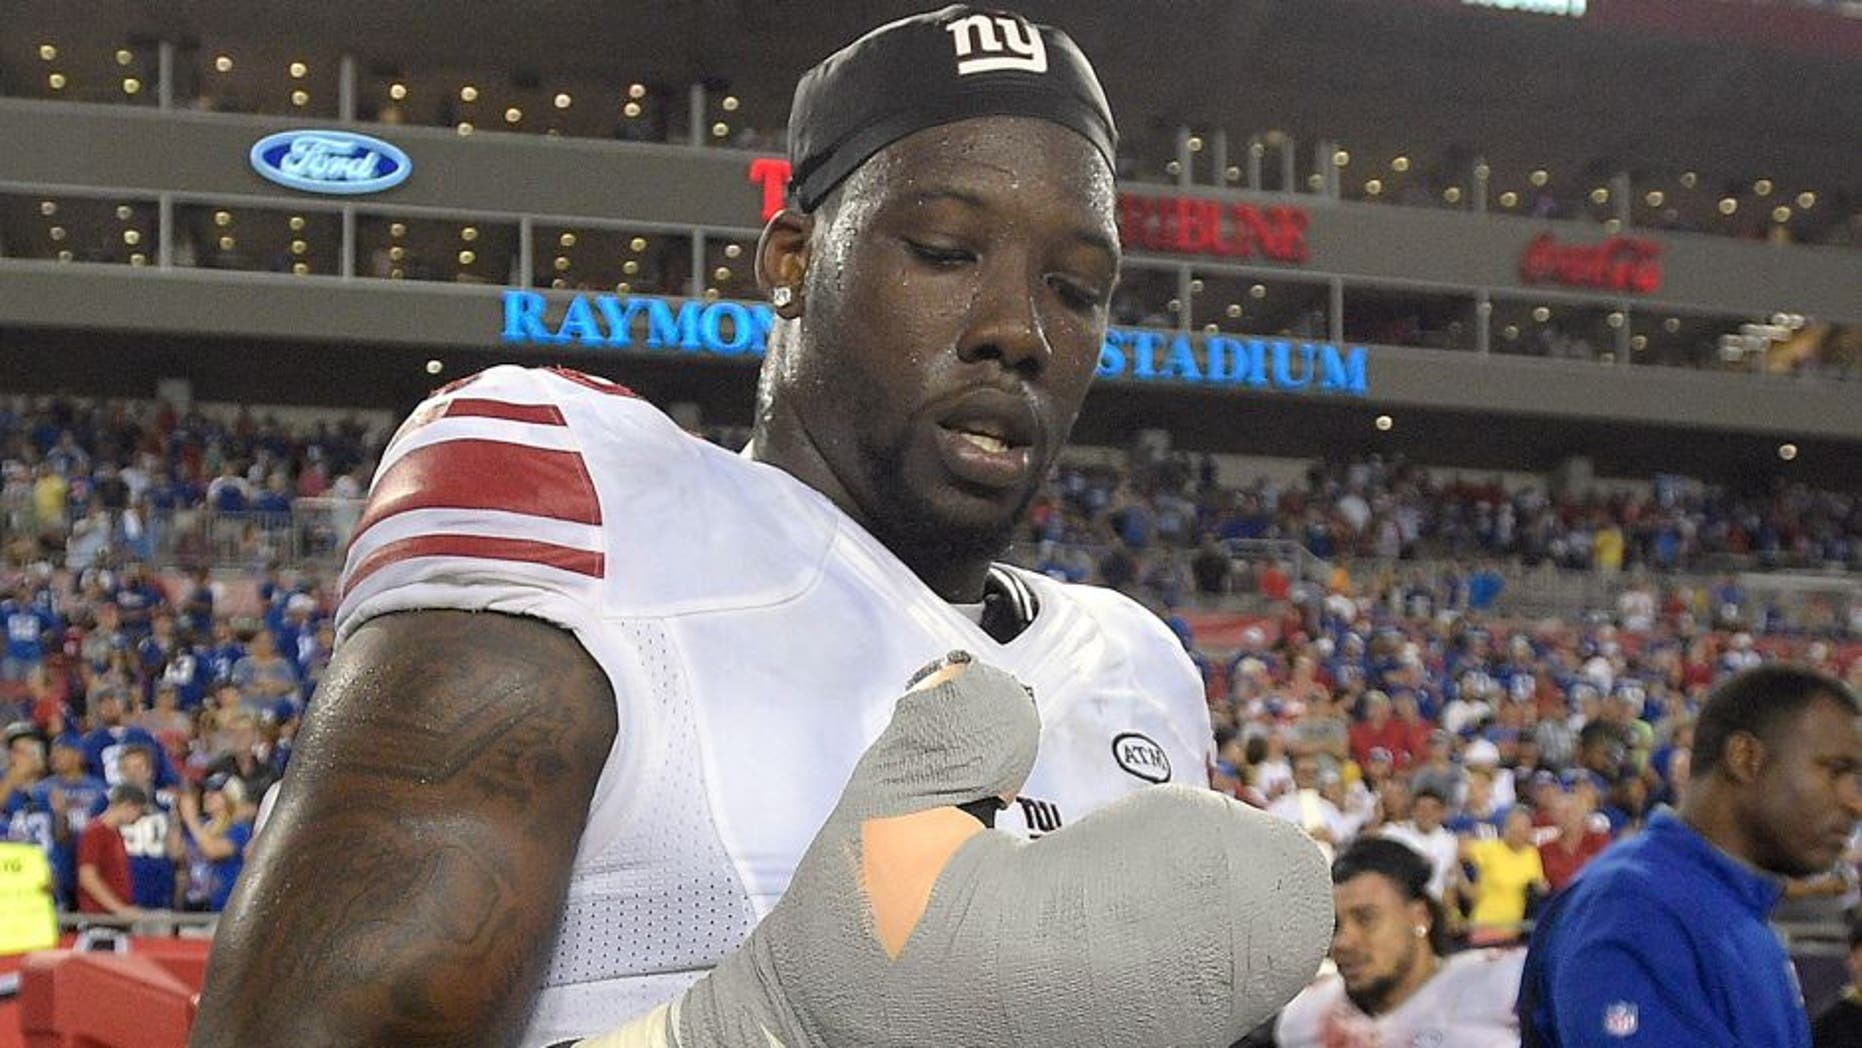 New York Giants defensive end Jason Pierre-Paul removes the bandage from his damaged hand after the Giants defeated the Tampa Bay Buccaneers 32-18 during an NFL football game Sunday, Nov. 8, 2015, in Tampa, Fla. (AP Photo/Phelan M. Ebenhack)